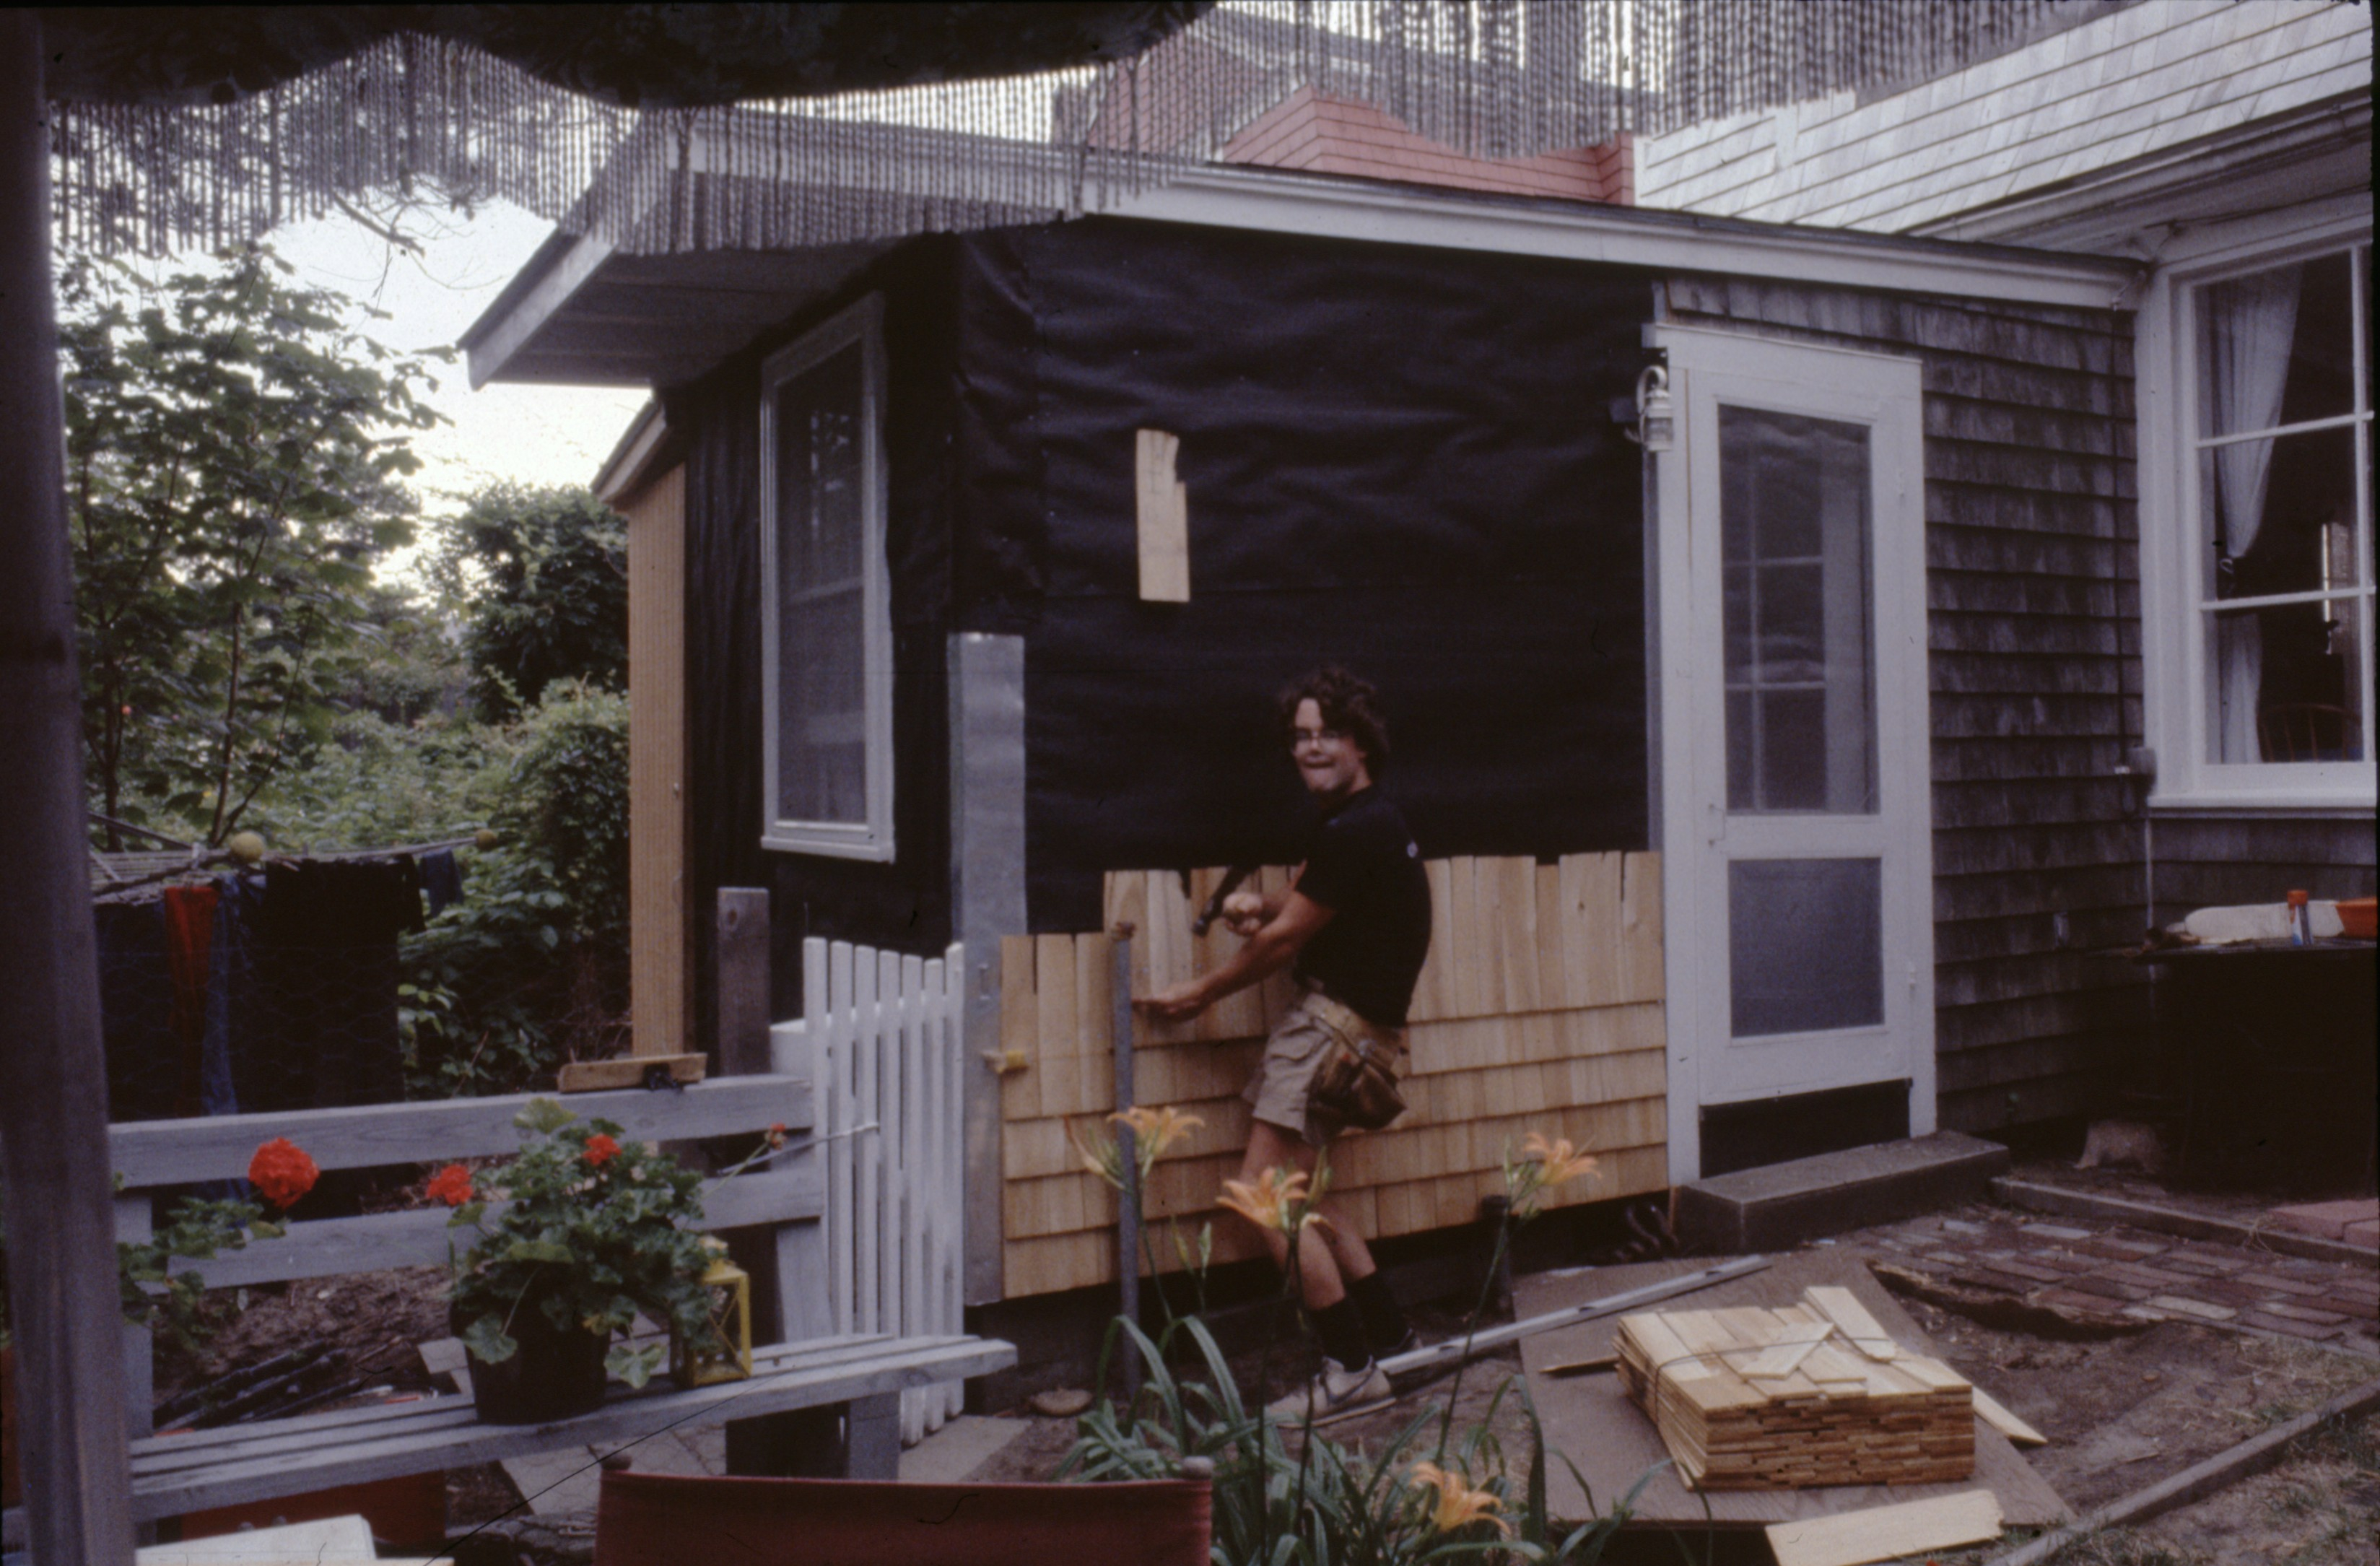 Dan Kearney installs siding on a house as a young man